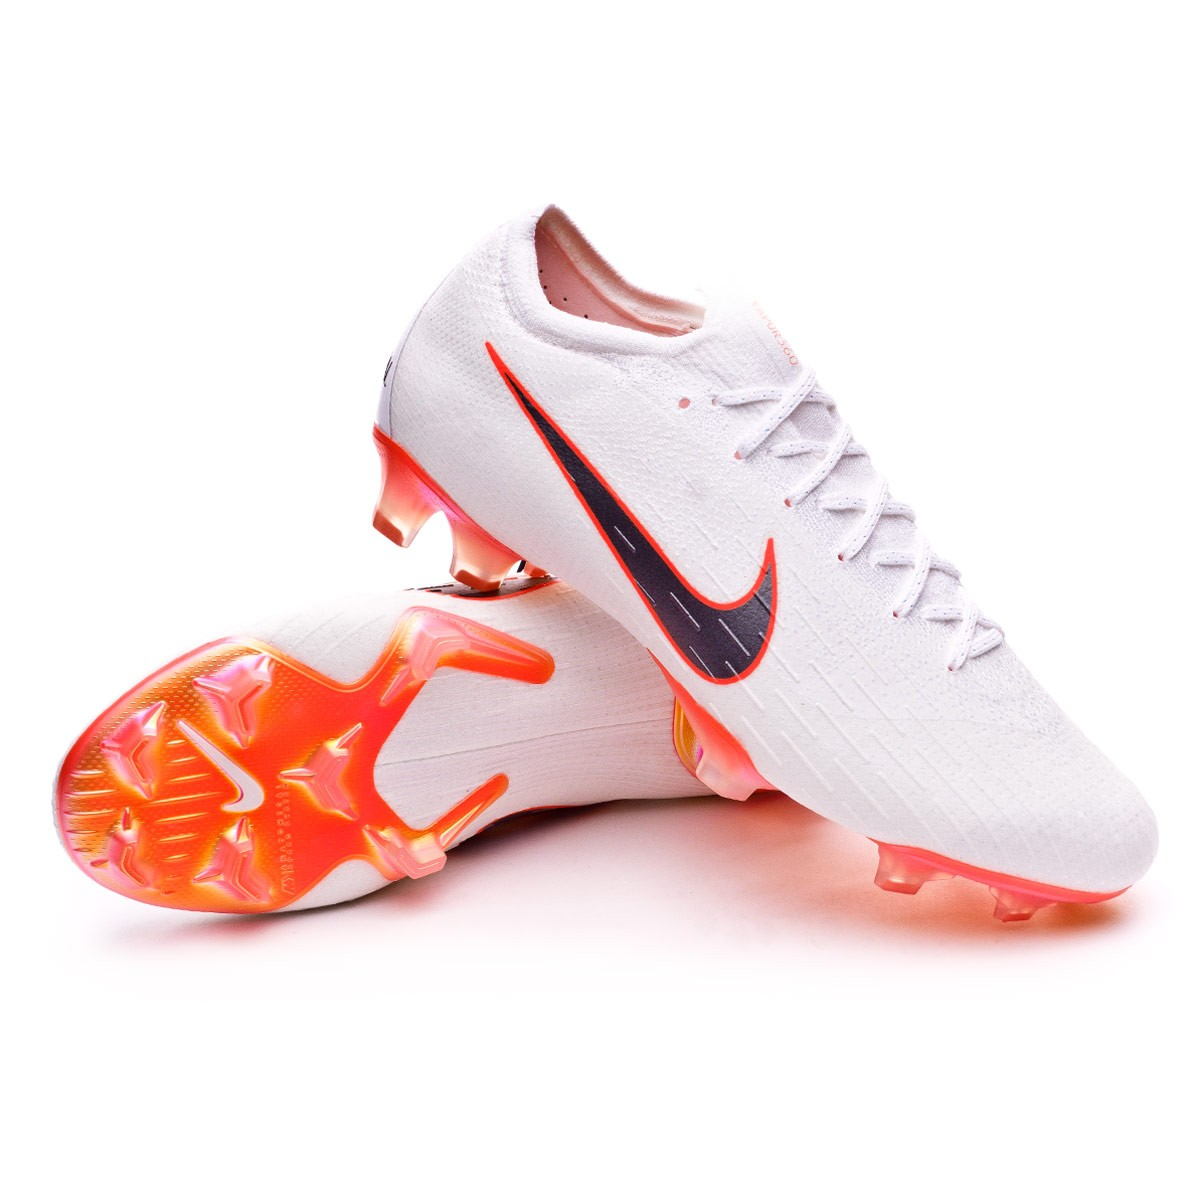 20a178f7cef Nike Mercurial Vapor XII Elite FG Football Boots. White-Metallic cool grey-Total  orange ...